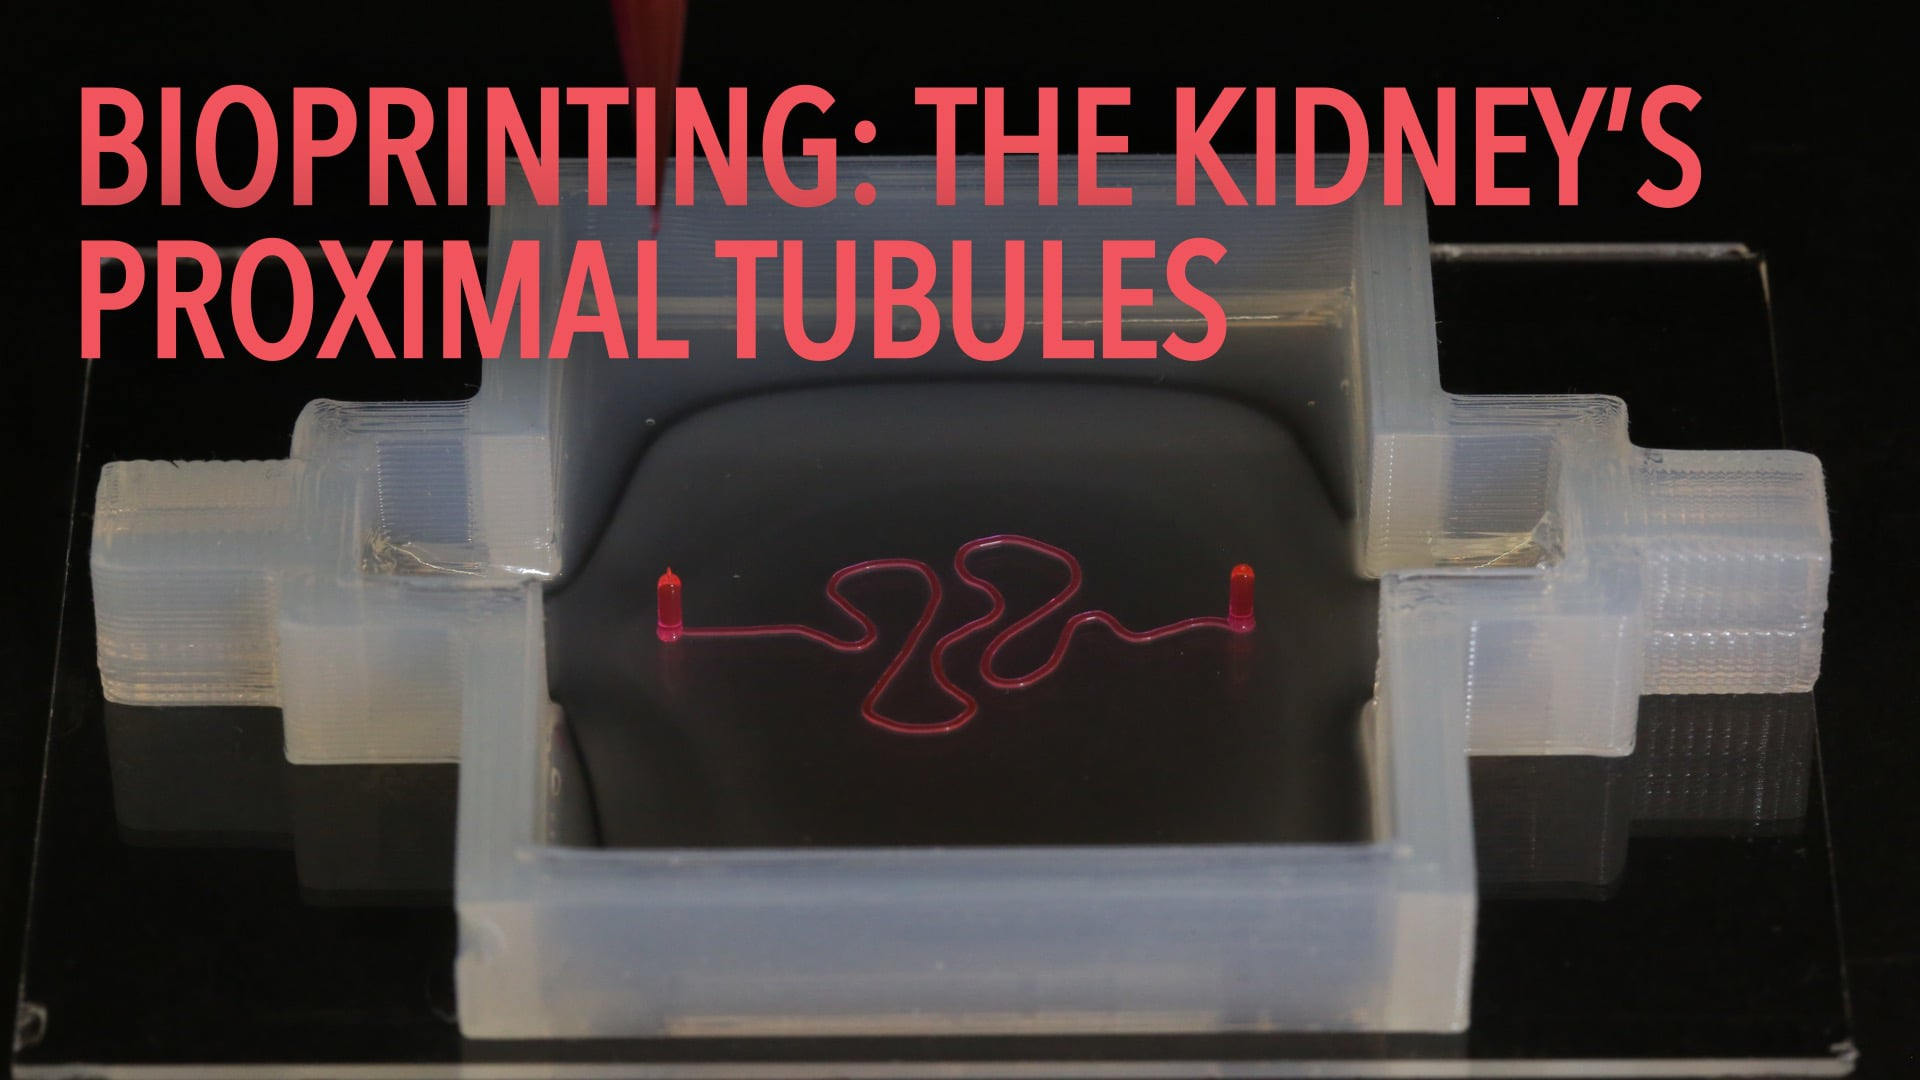 Bioprinting: The Kidney's Proximal Tubules